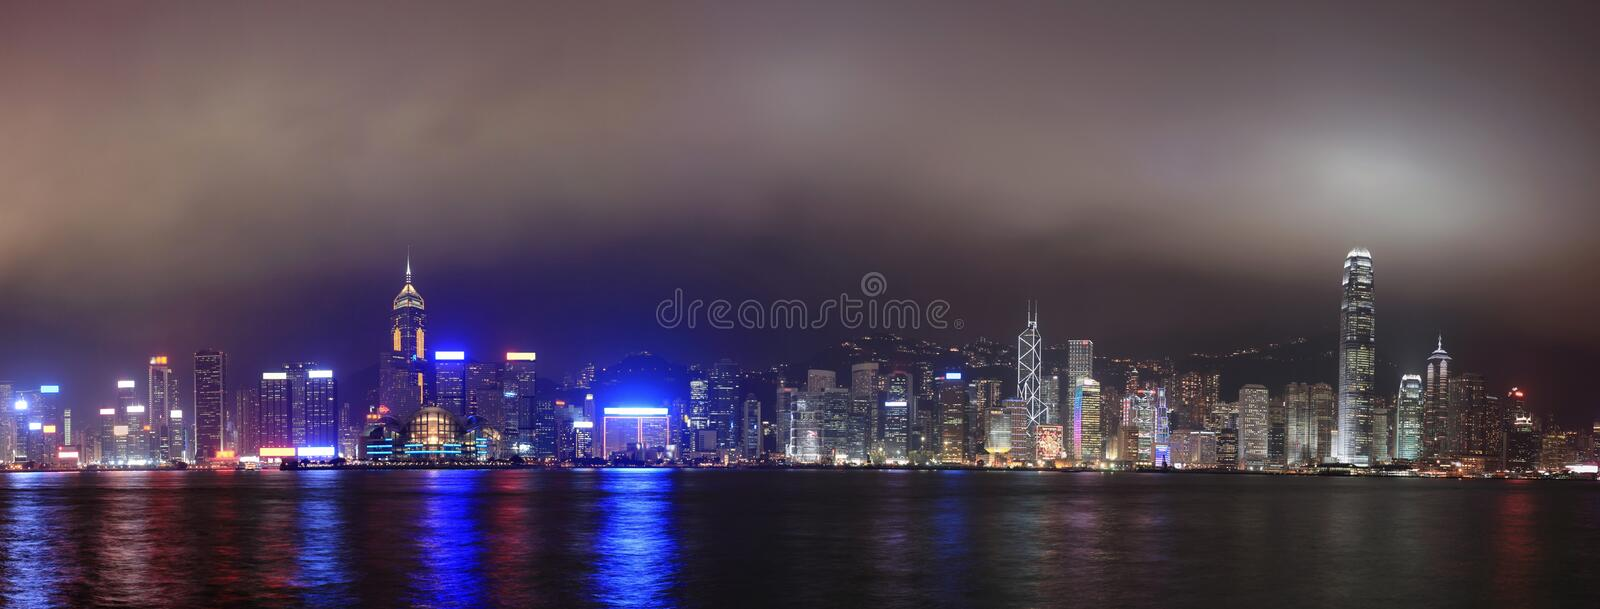 Hong Kong at night, Panorama royalty free stock photography